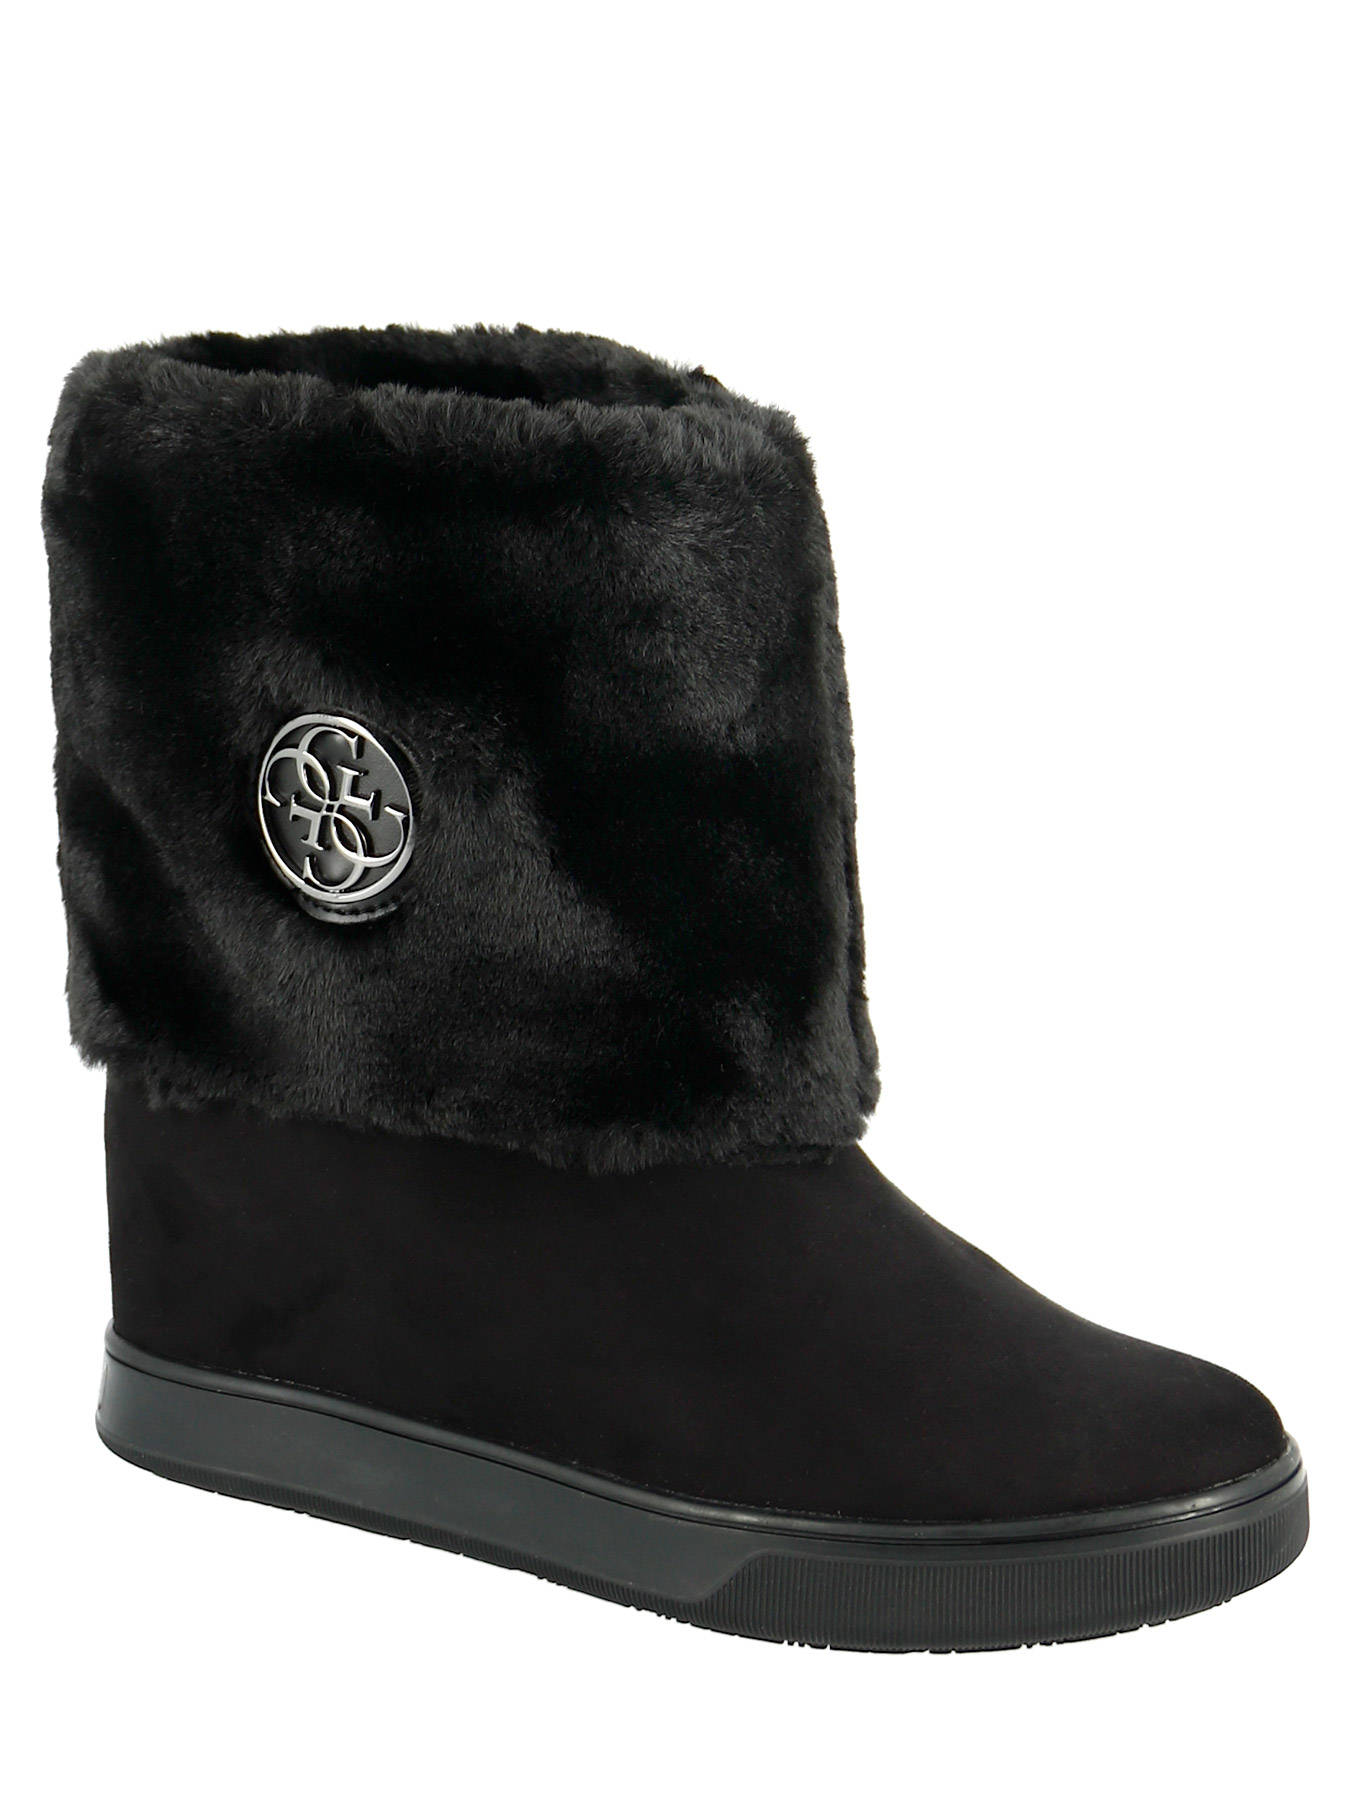 eacd5f6b394e Guess Boots FAMOUZ - best prices.